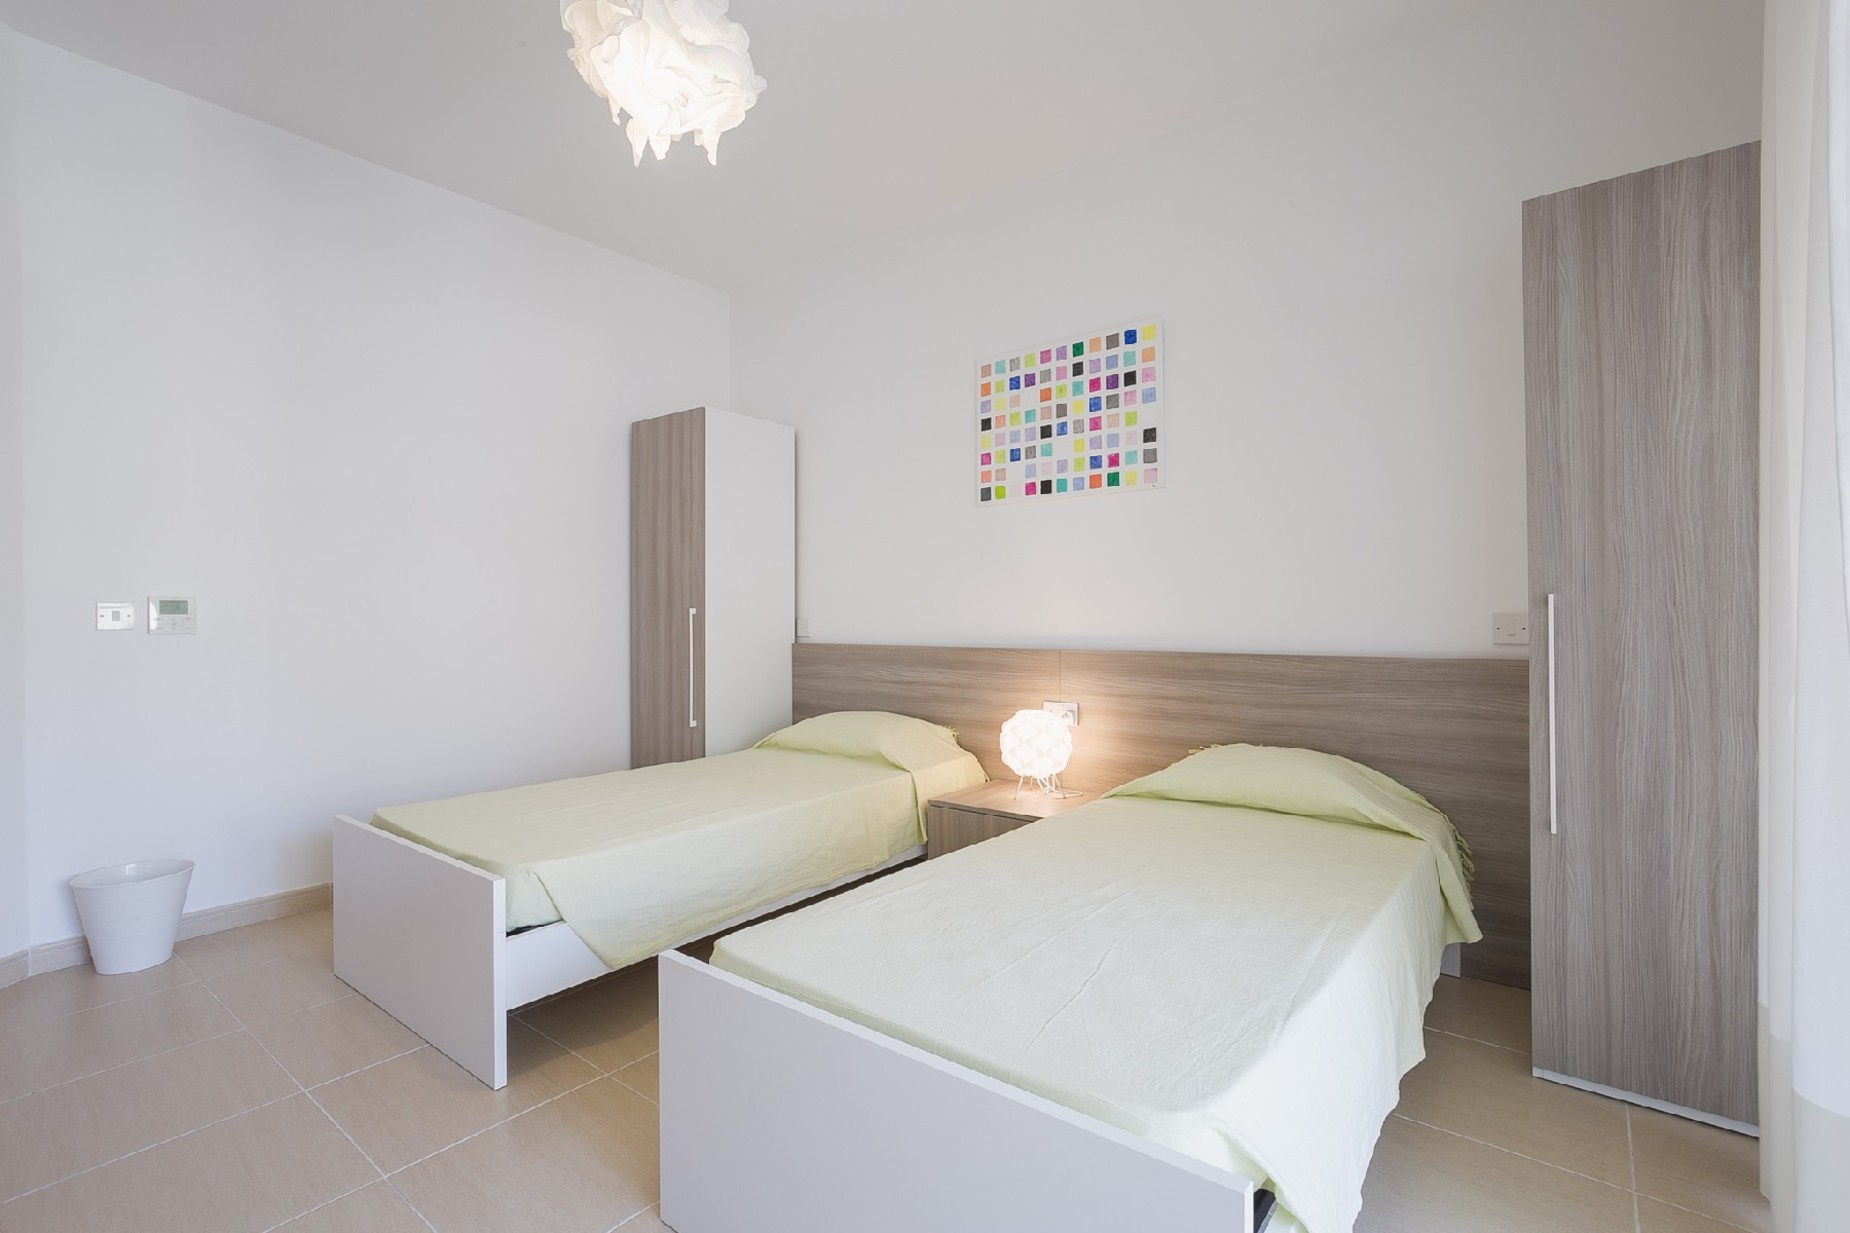 2 bed Apartment For Rent in Mellieha, Mellieha - thumb 14